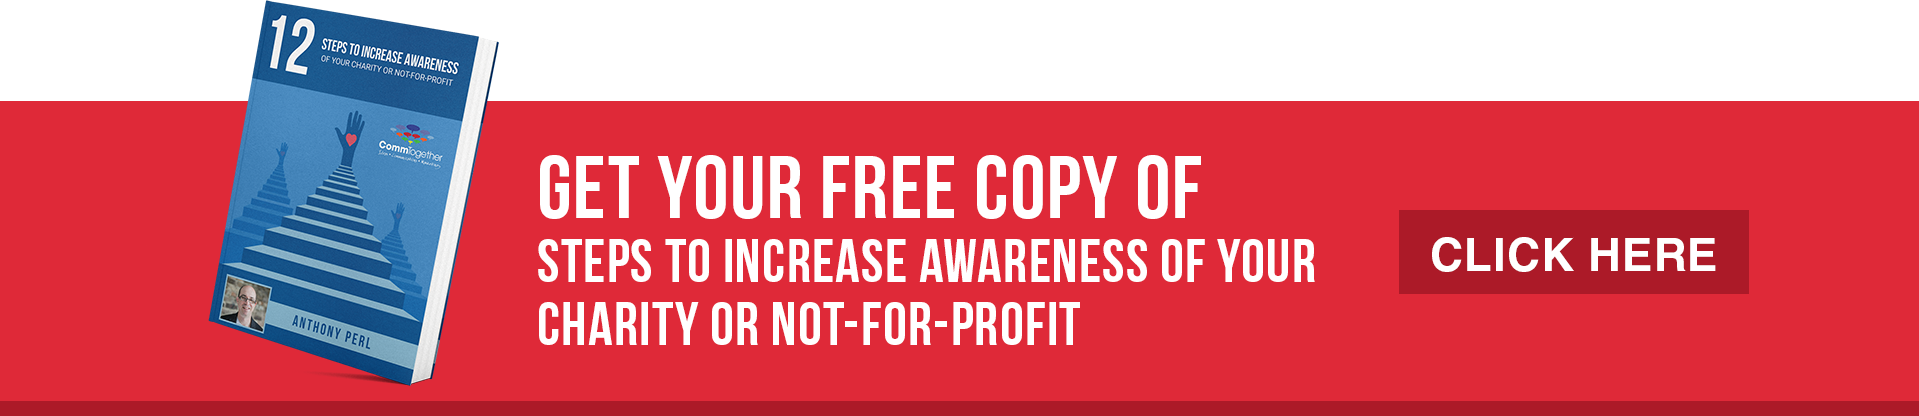 12 steps to increasing awareness of your charity or not-for-profit